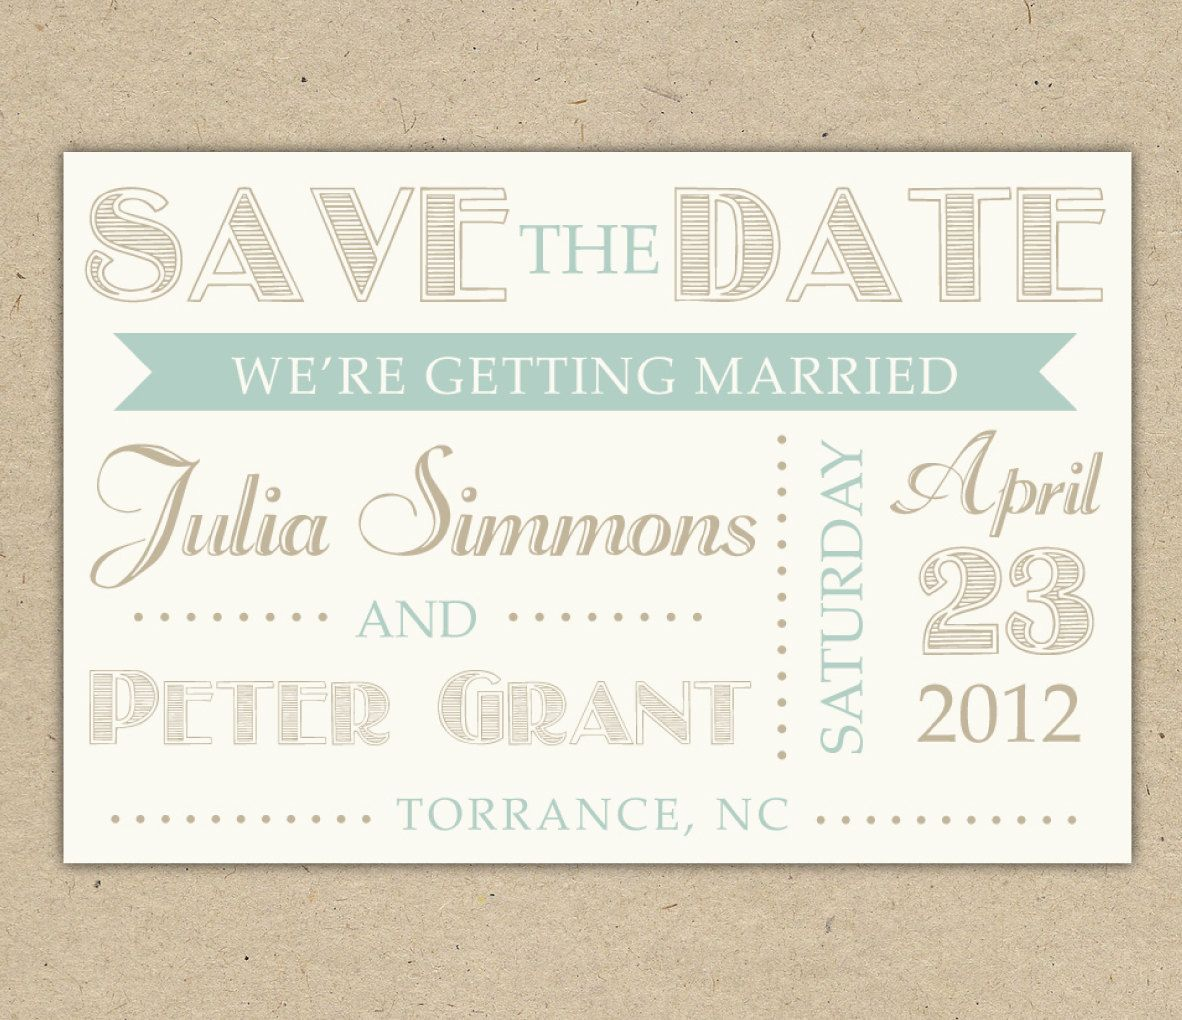 Save the date cards templates for weddings template bridal showers and wedding planning for Save the date postcard template free